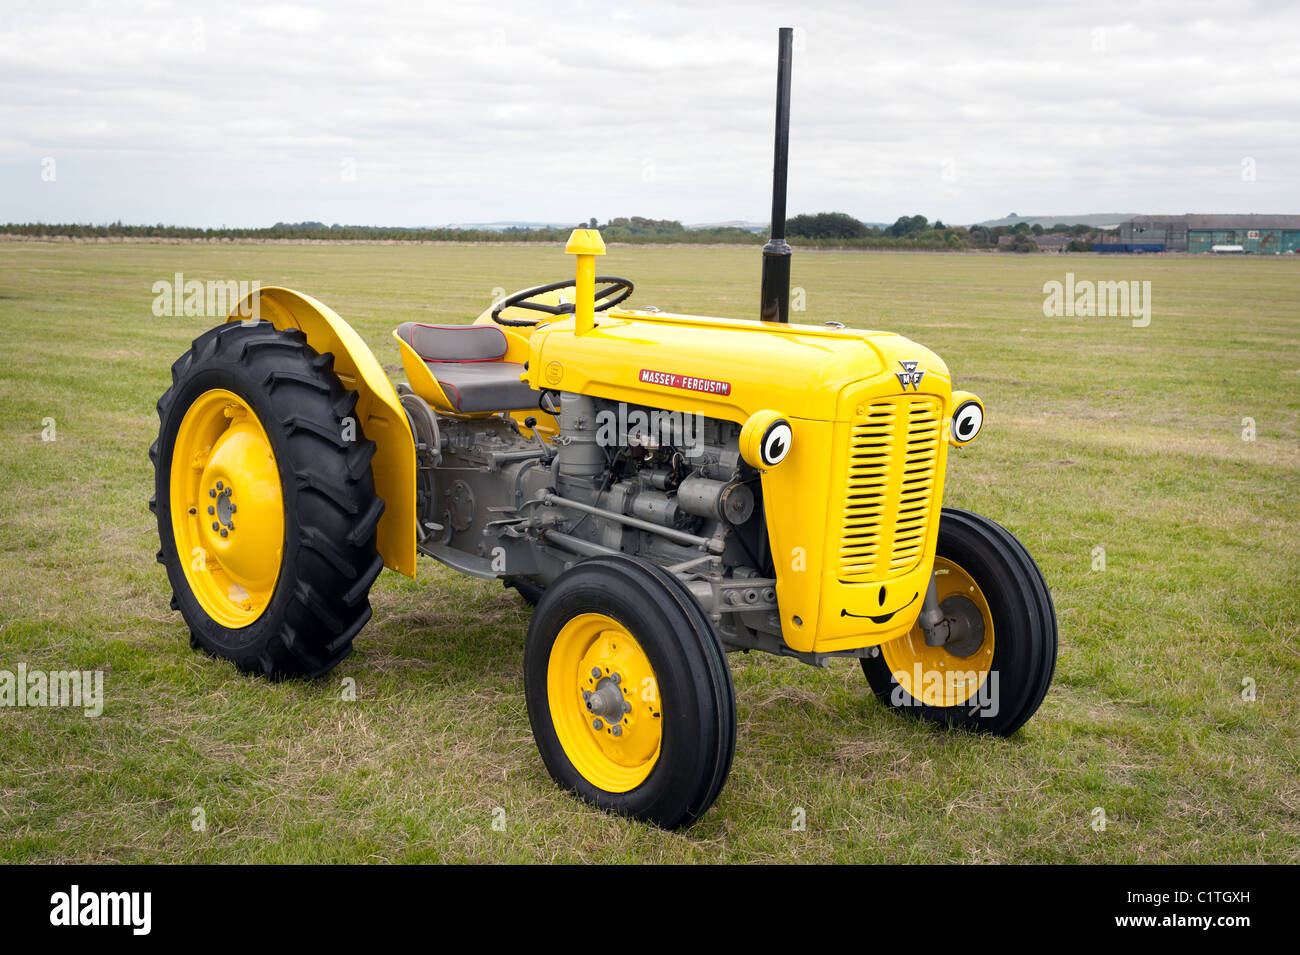 Massey Ferguson Model 35 : A massey ferguson model painted yellow and grey with